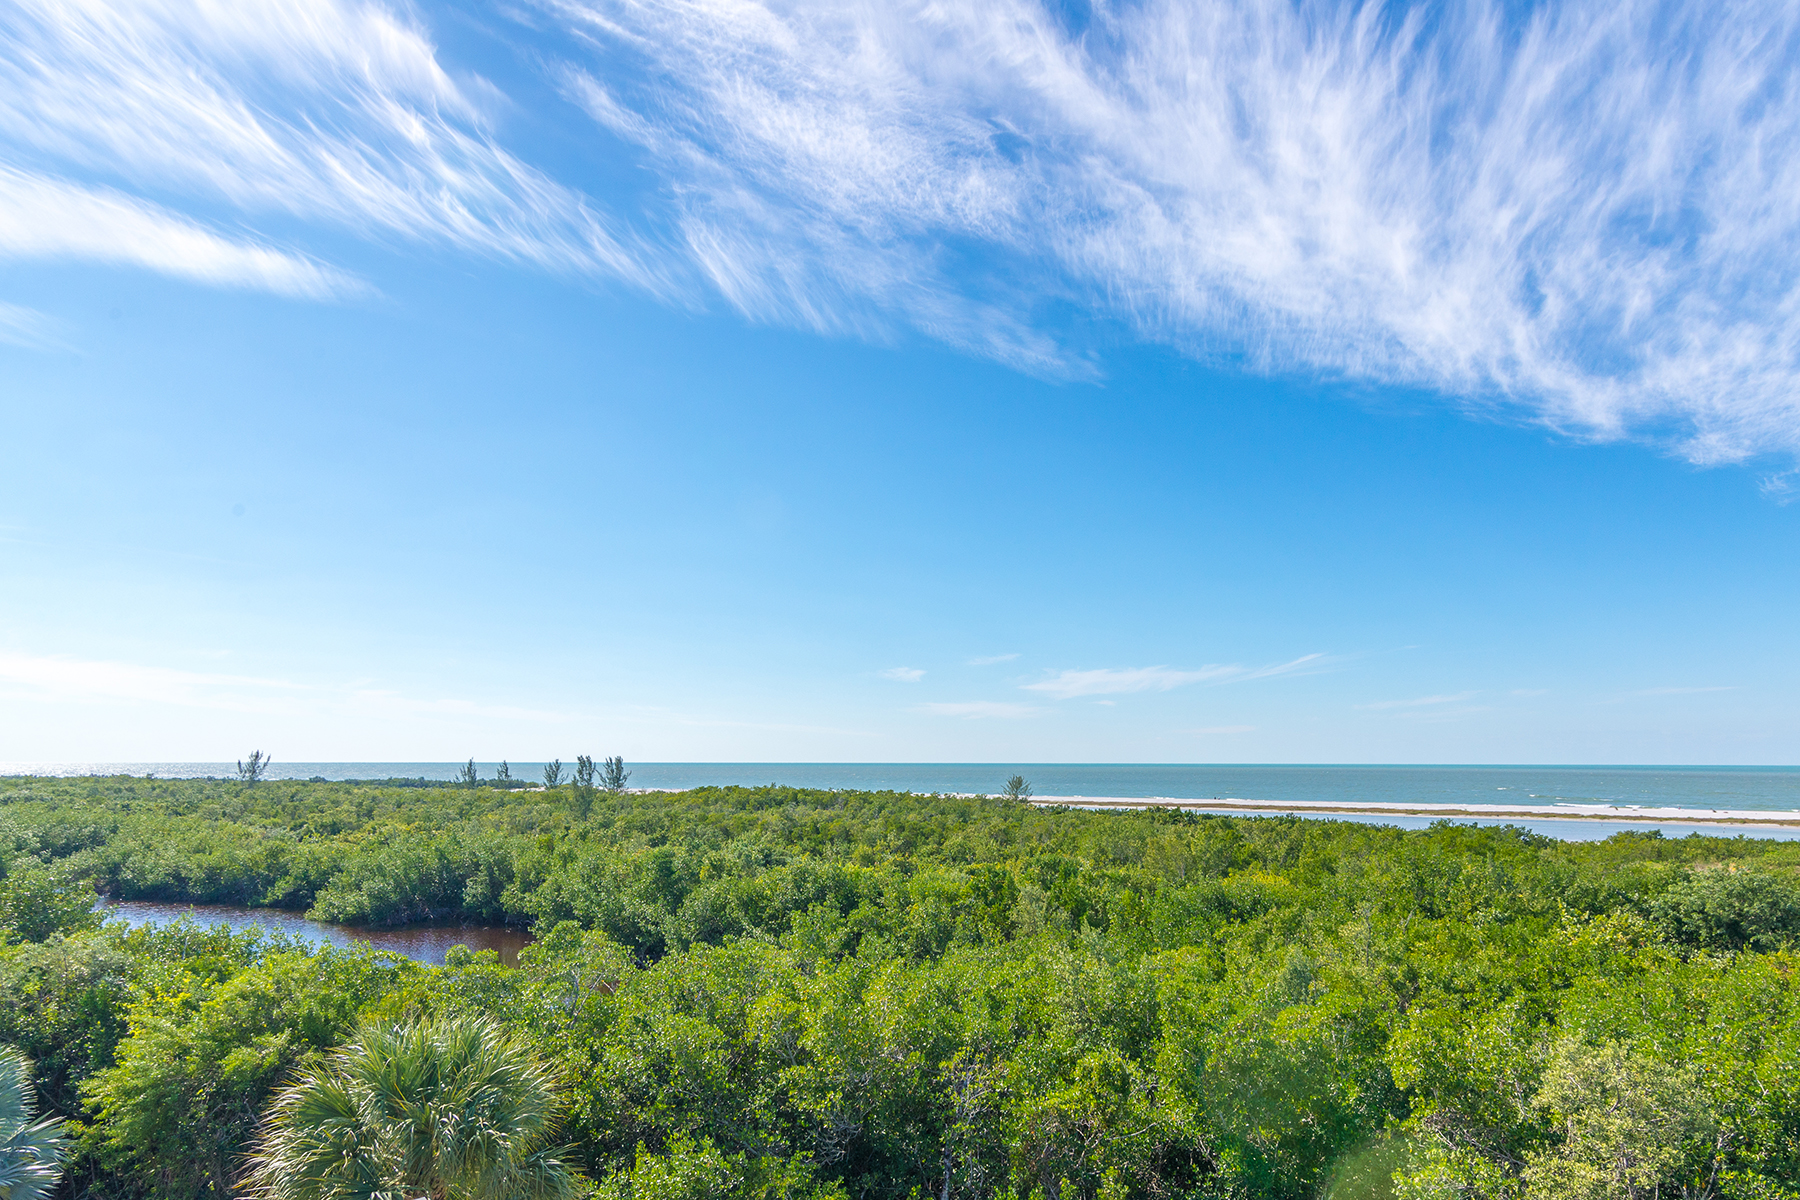 Land for Sale at MARCO ISLAND - WATERSIDE 710 Waterside Dr Marco Island, Florida, 34145 United States